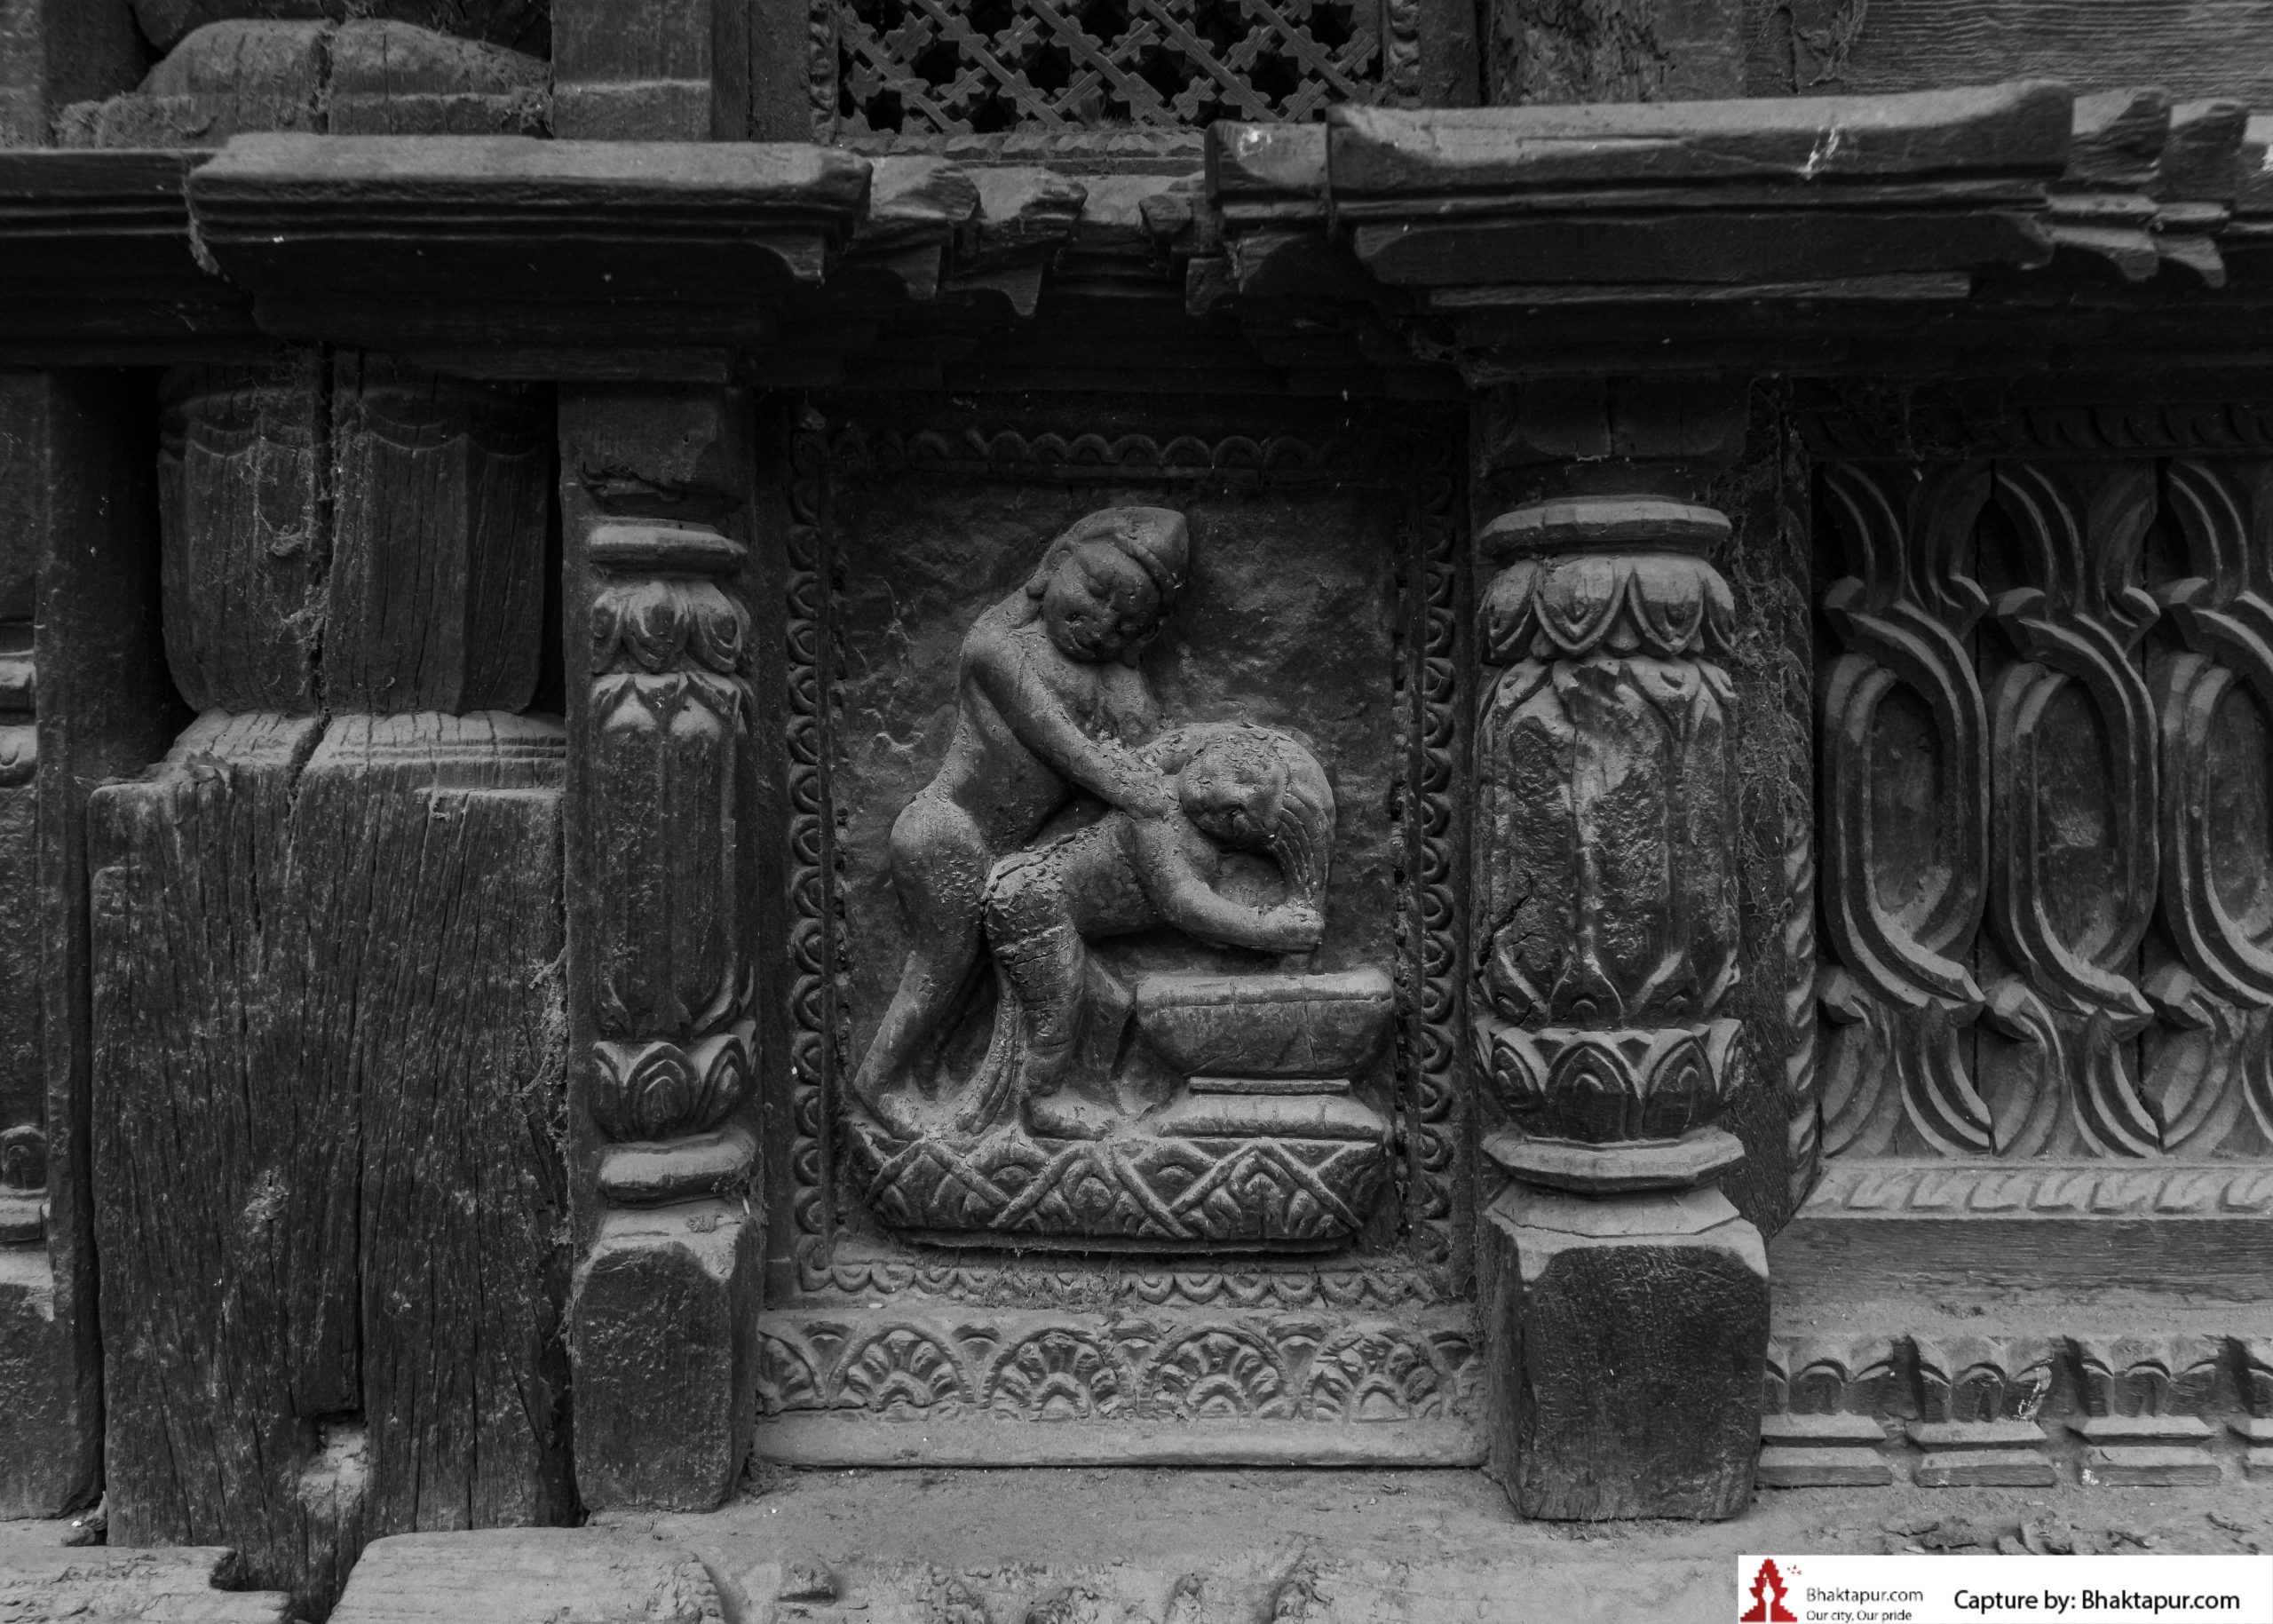 https://www.bhaktapur.com/wp-content/uploads/2021/08/erotic-carving-11-of-137-scaled.jpg